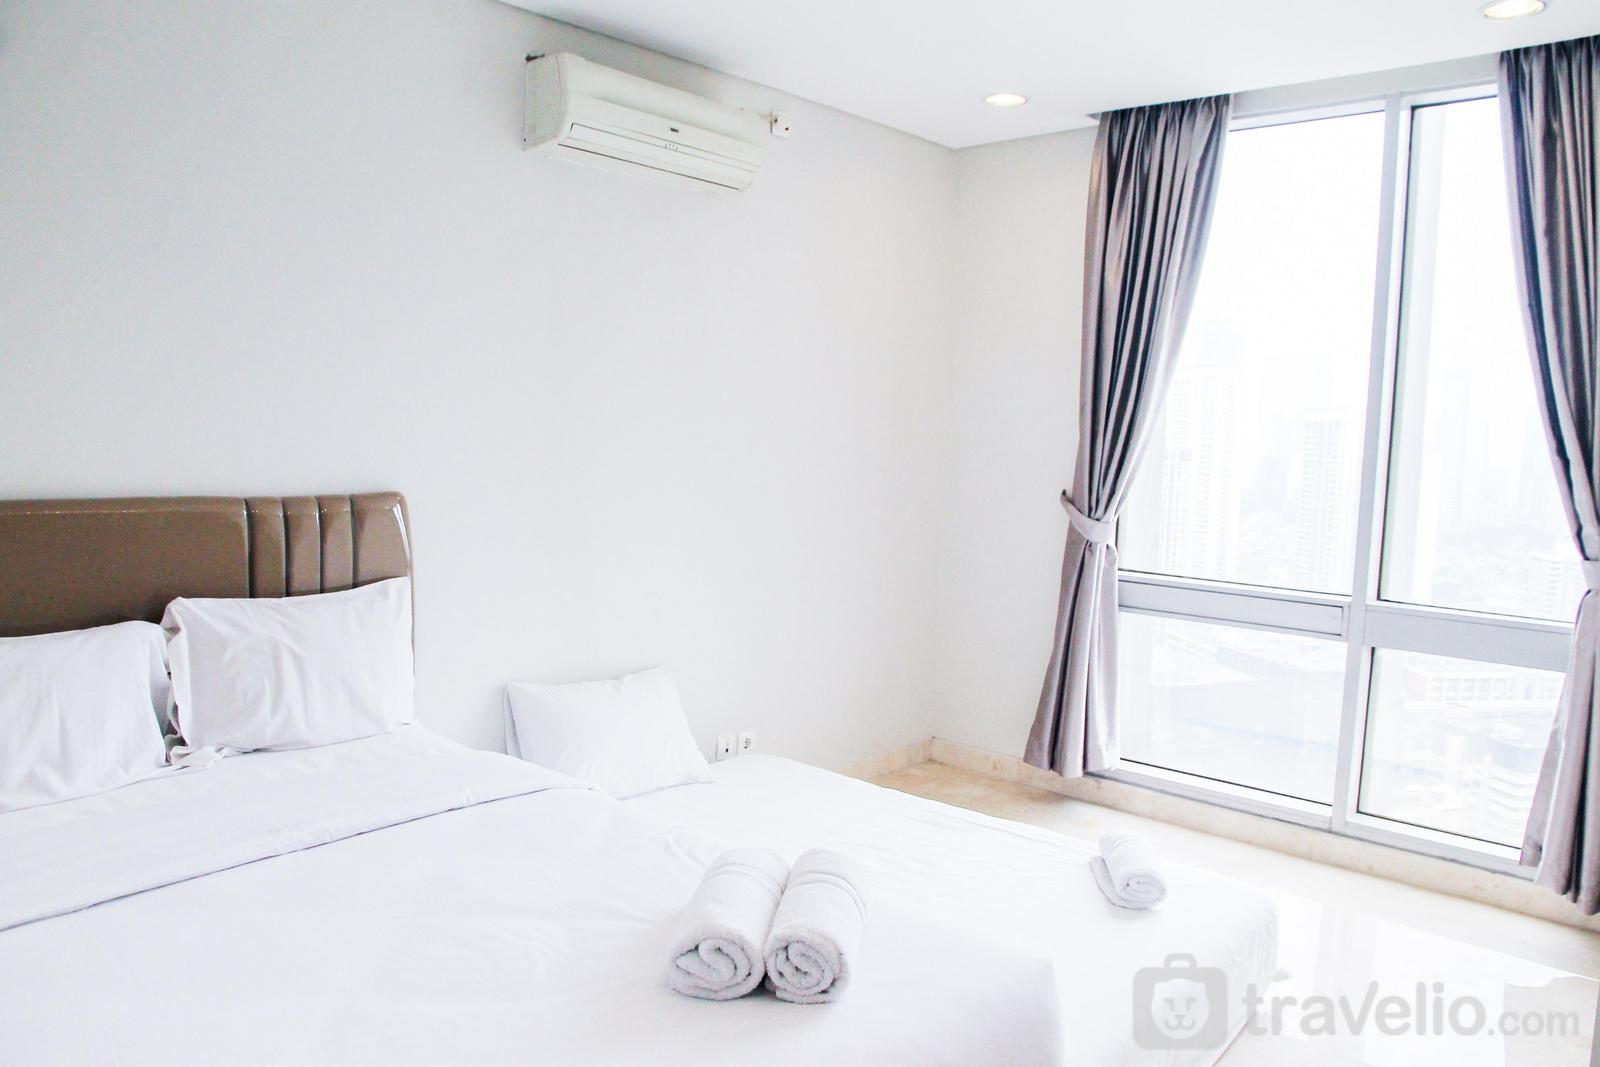 The Grove Suites - Luxury 1BR Apartment The Grove Condominium near Karet Kuningan By Travelio